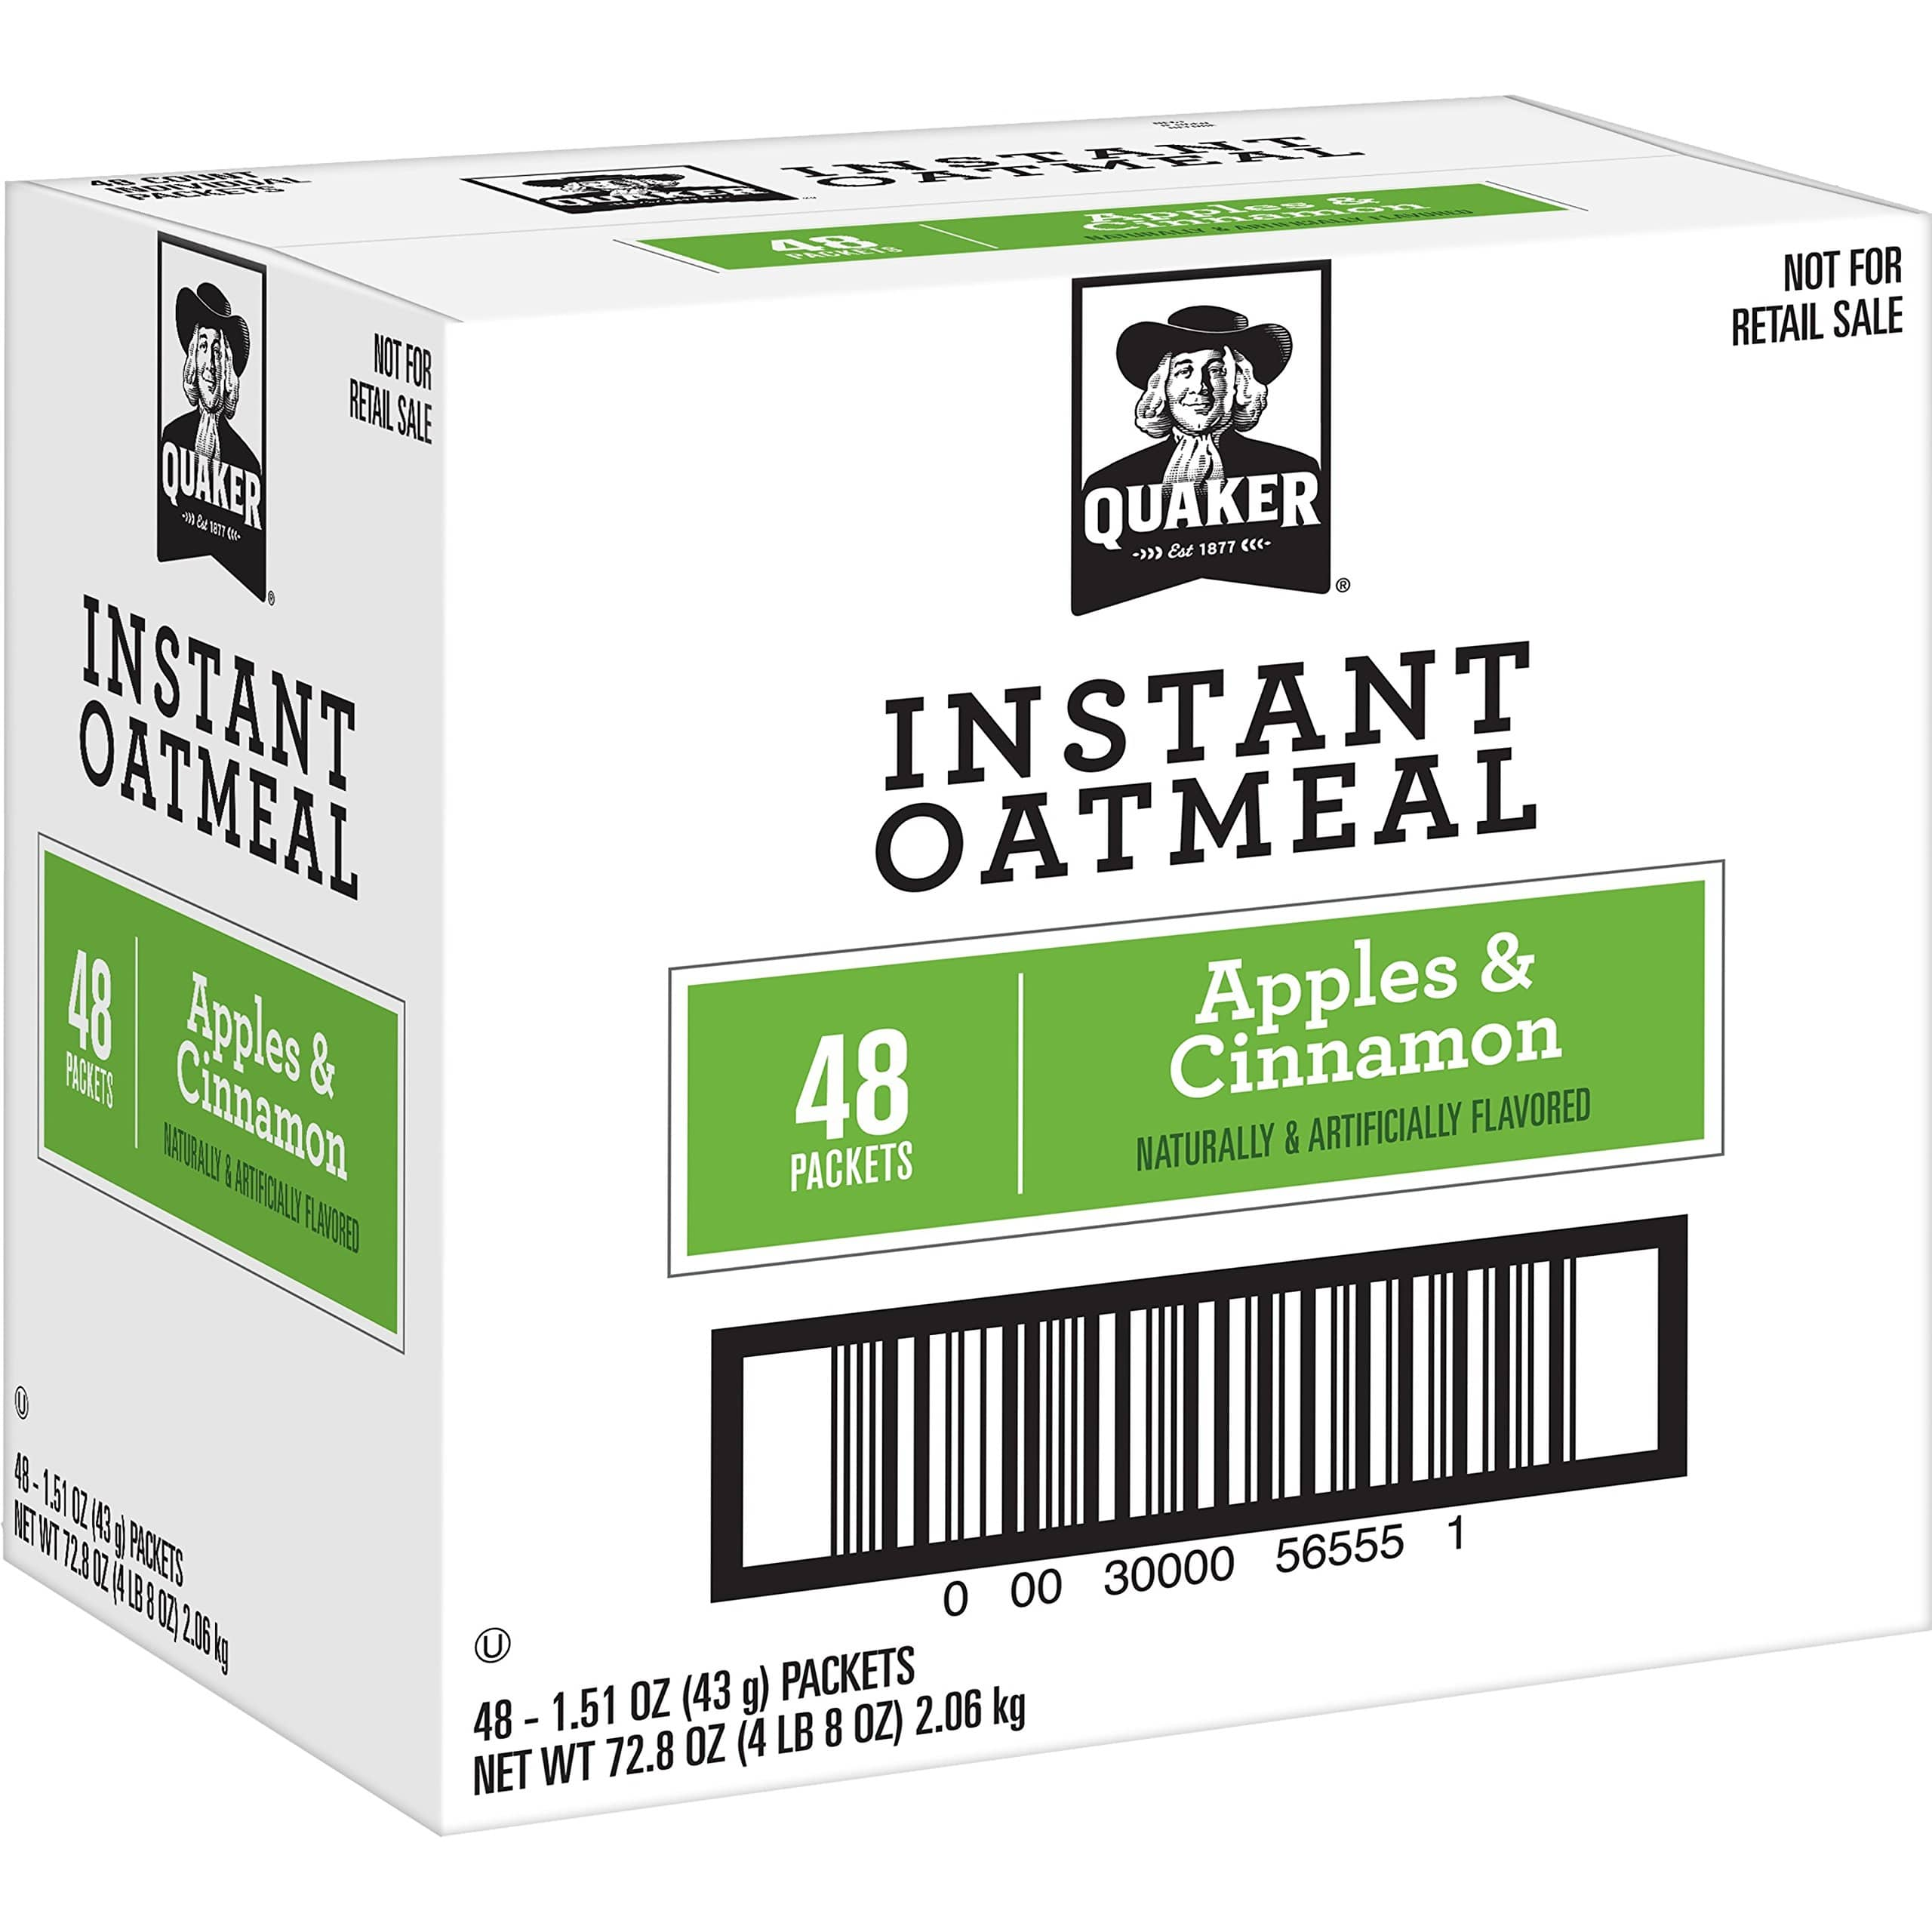 12-Pack Quaker Instant Oatmeal Express Cups (Apples & Cinnamon) $7.72 + free shipping with prime